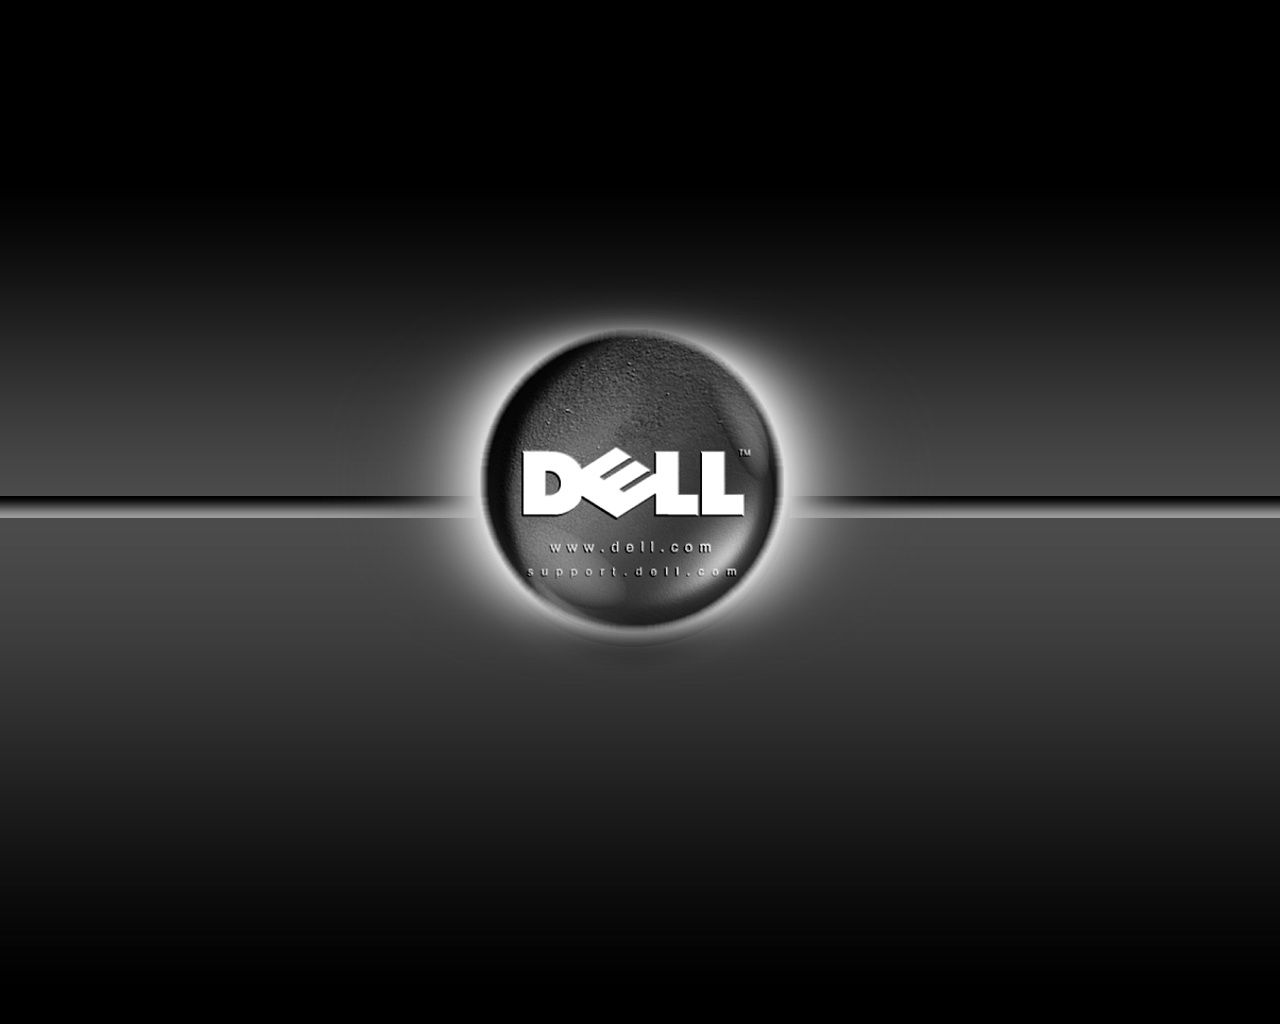 Black Dell Screen Savers Wallpapers Laptop Wallpaper Hd Wallpaper